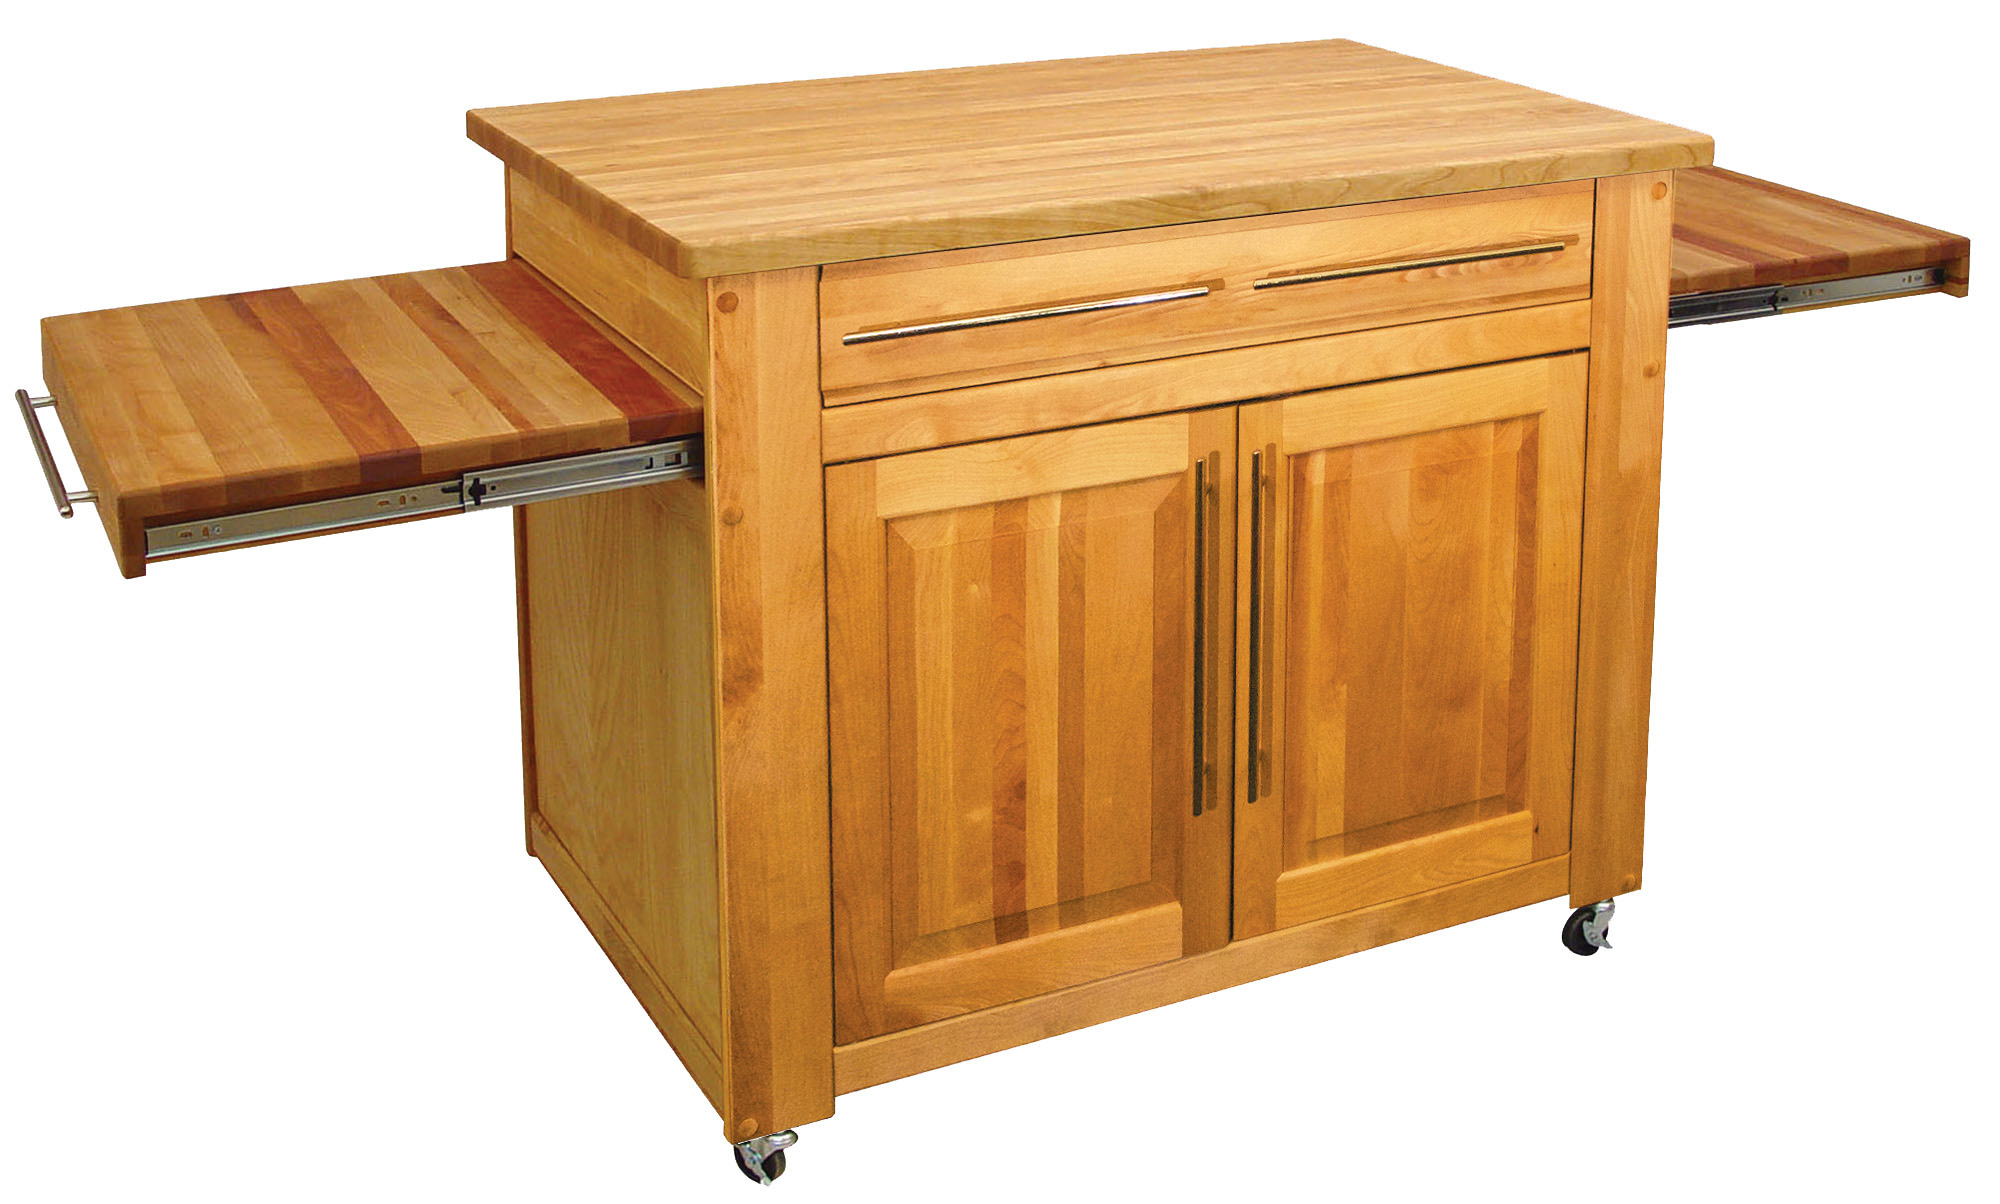 kitchen island table on wheels free standing kitchen catskills empire work center butcher block island pullout leaves movable kitchen islands rolling on wheels mobile